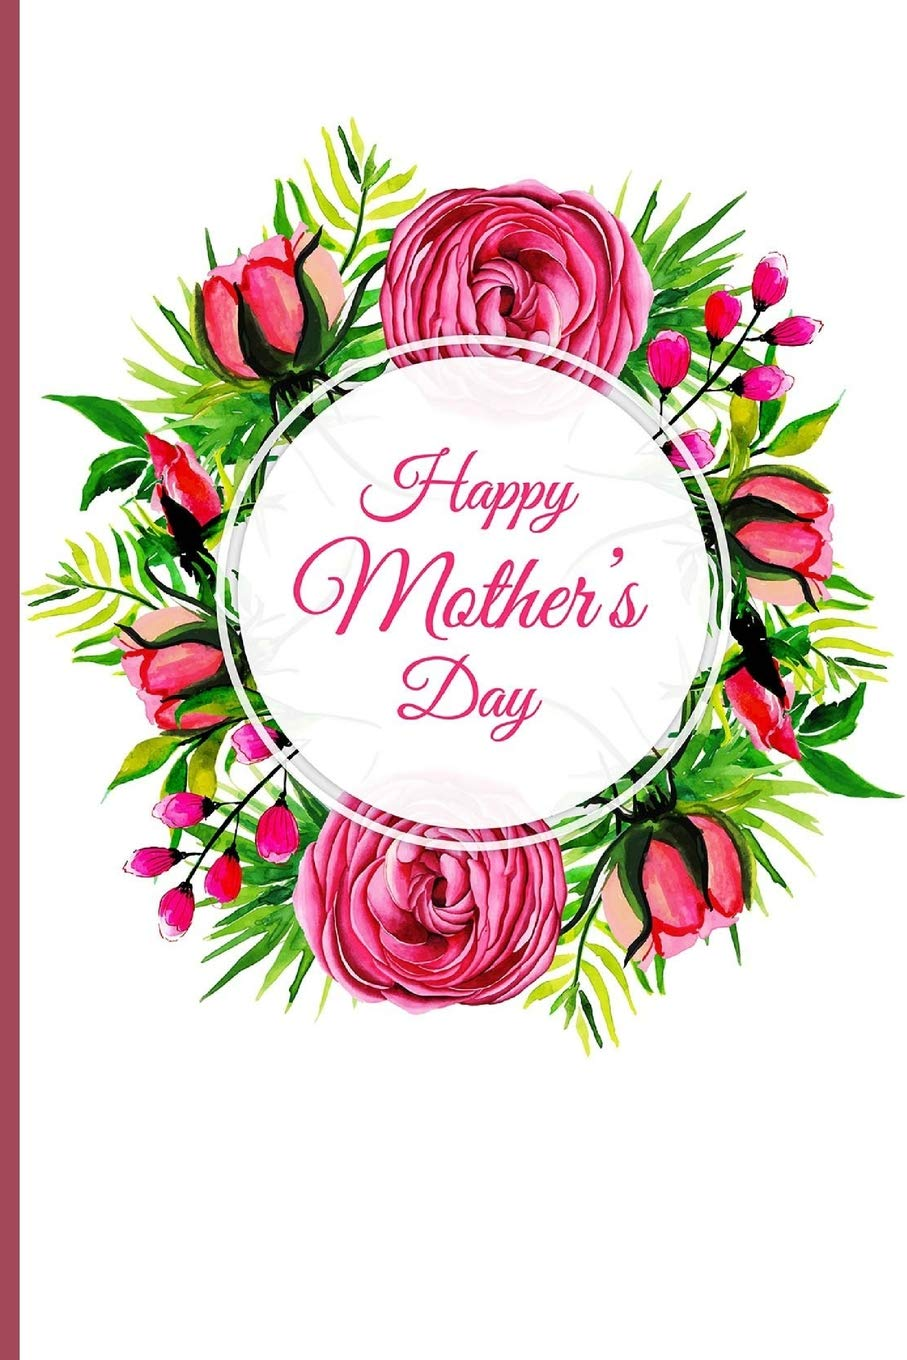 Happy Mother S Day Novelty Mothers Day Gifts For Mom Lined Notebook Journal Diary To Write In Pink Flower Ornament Pencils Creative 9781092439350 Amazon Com Books